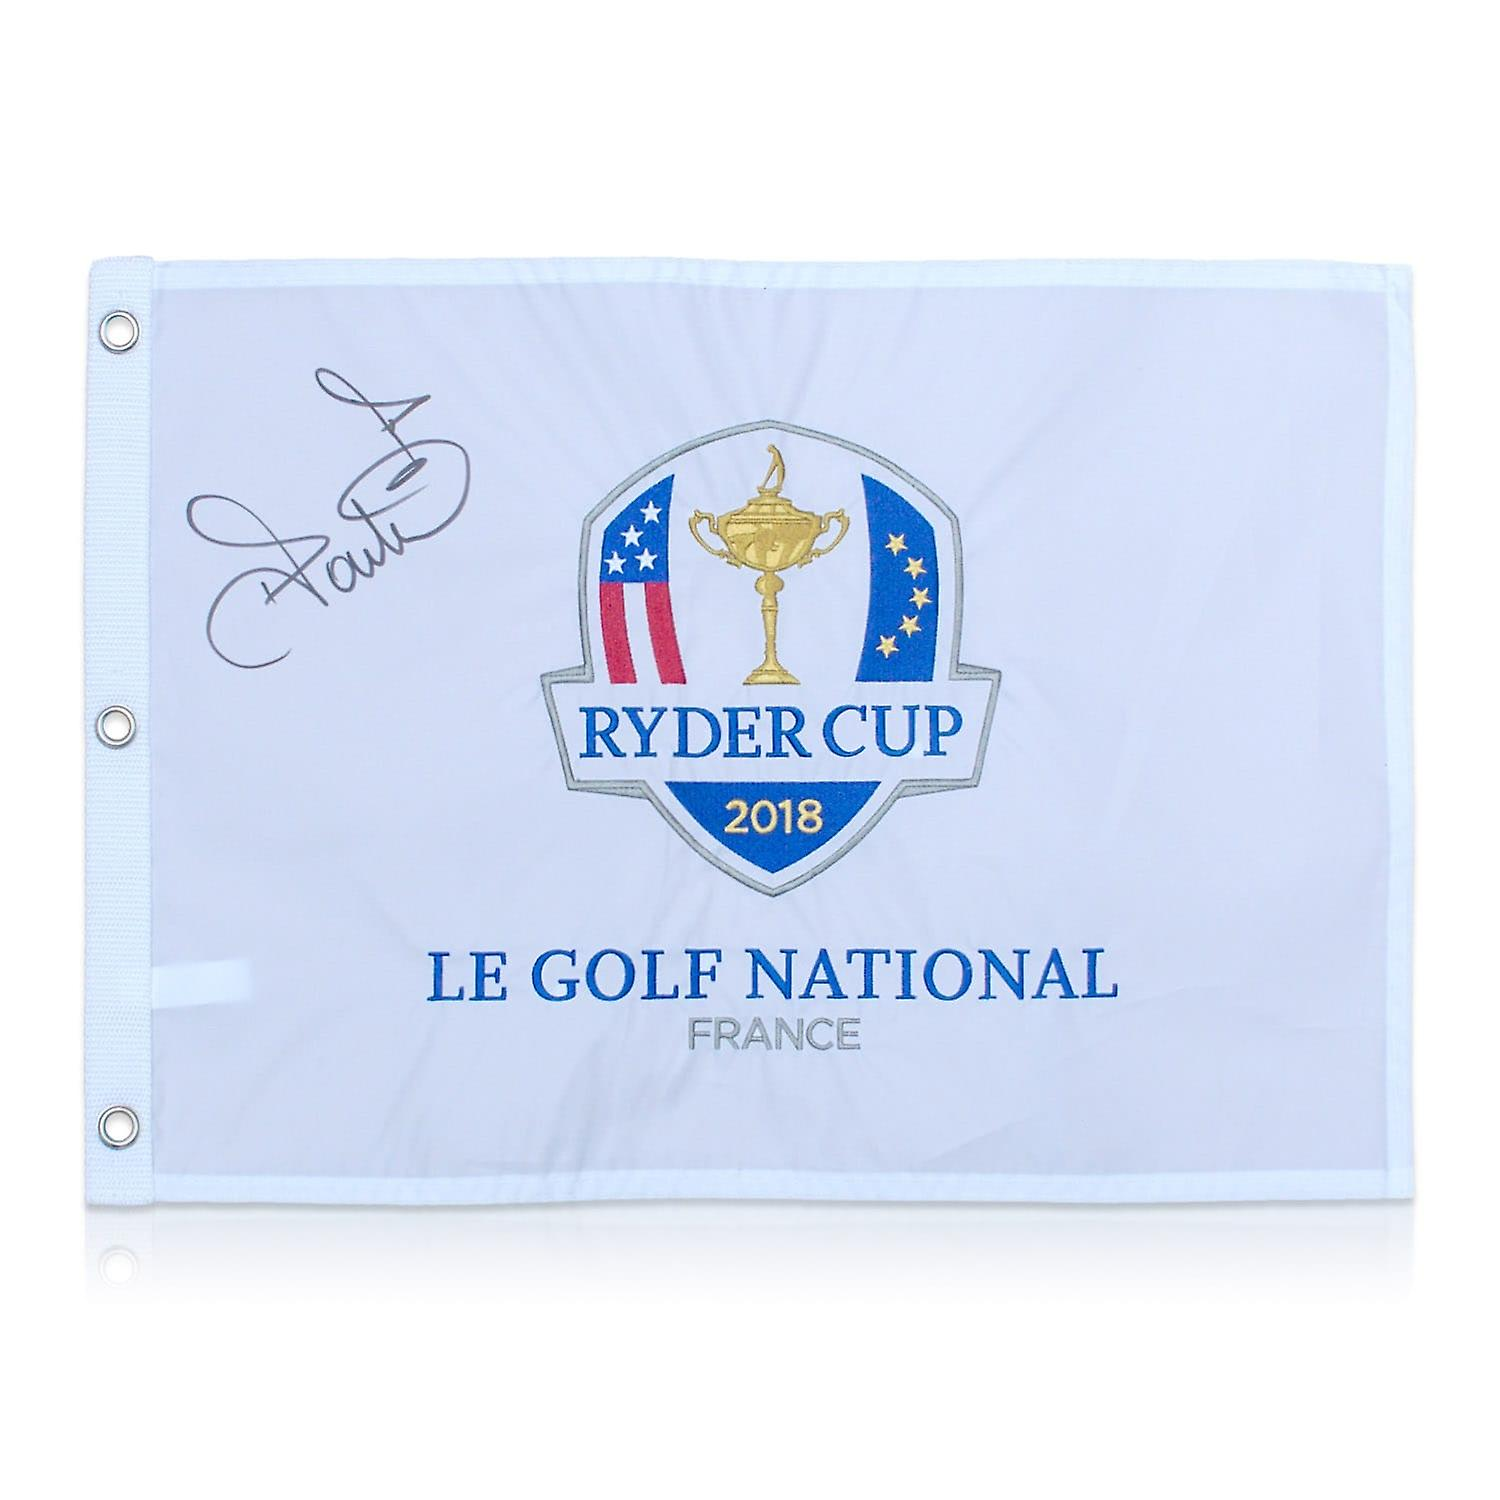 Ian Poulter Signed 2018 Ryder Cup Pin Flag. In Deluxe Frame